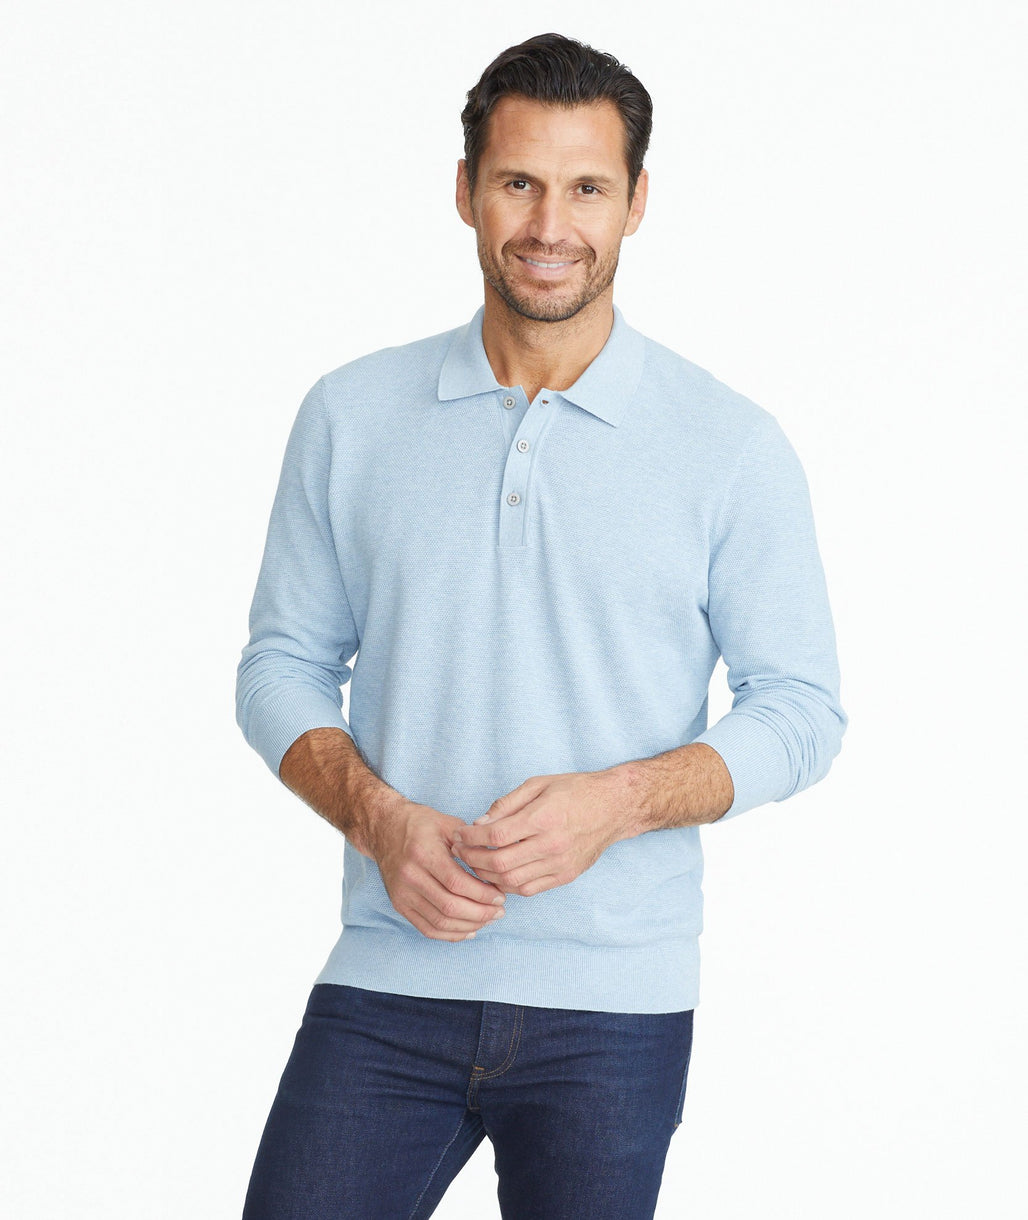 Model wearing a Light Blue Textured Long-Sleeve Polo